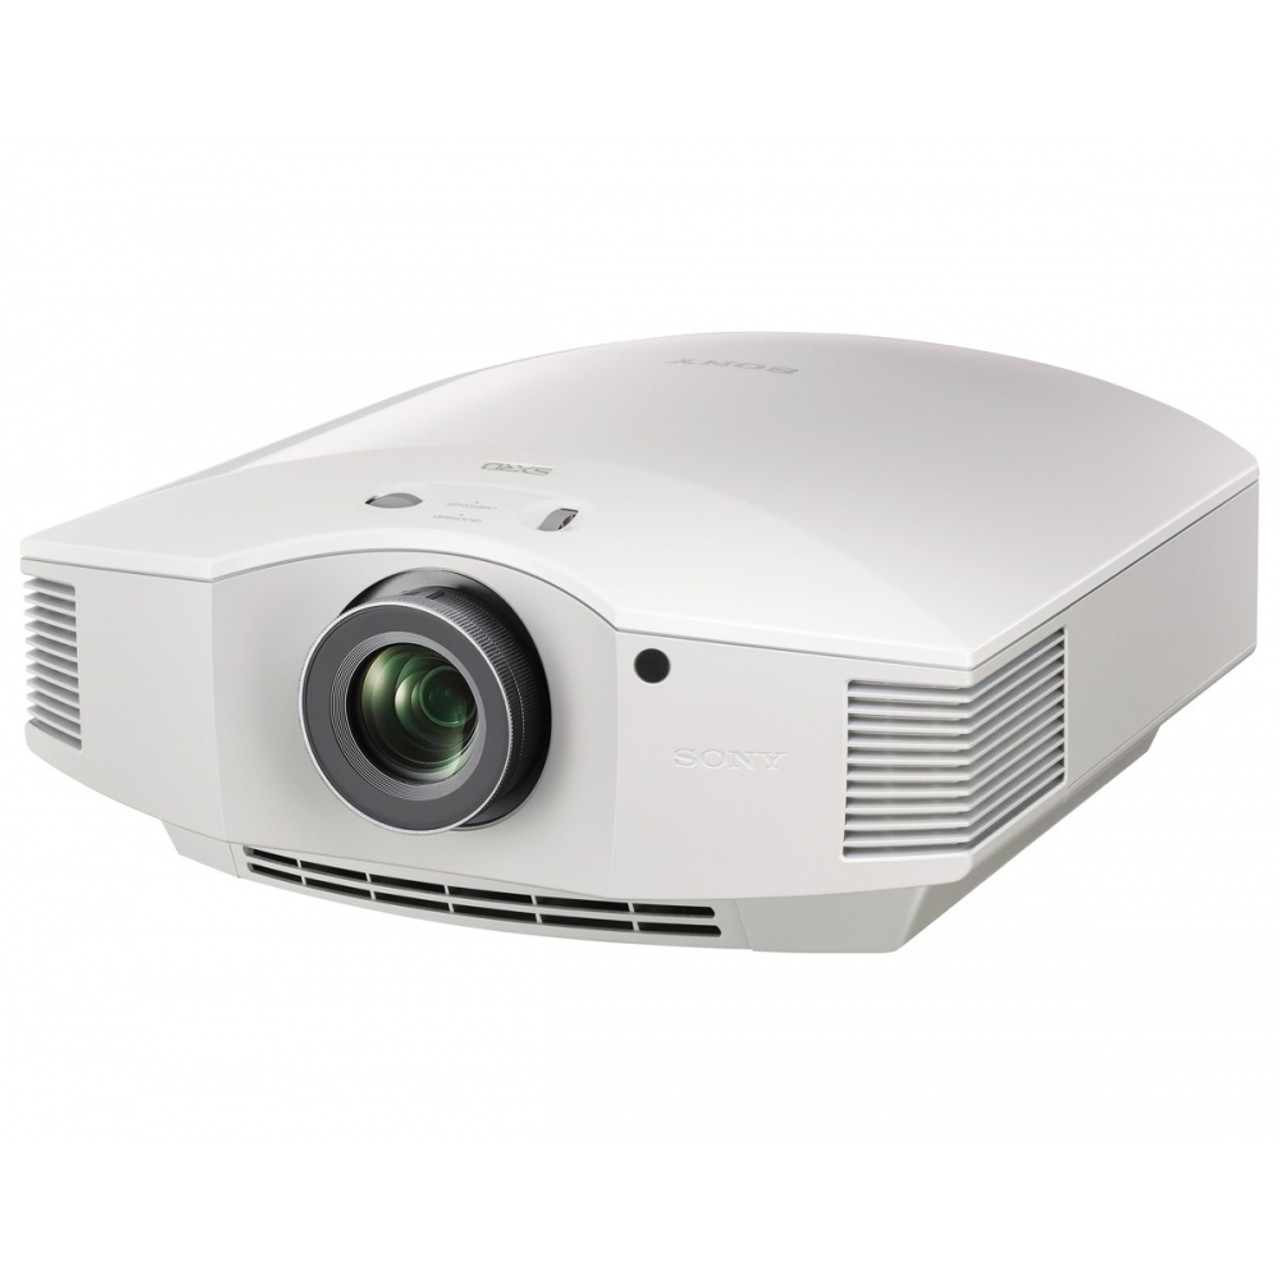 Sony HW45ES SDXRD Full HD 3D Home Cinema Projector